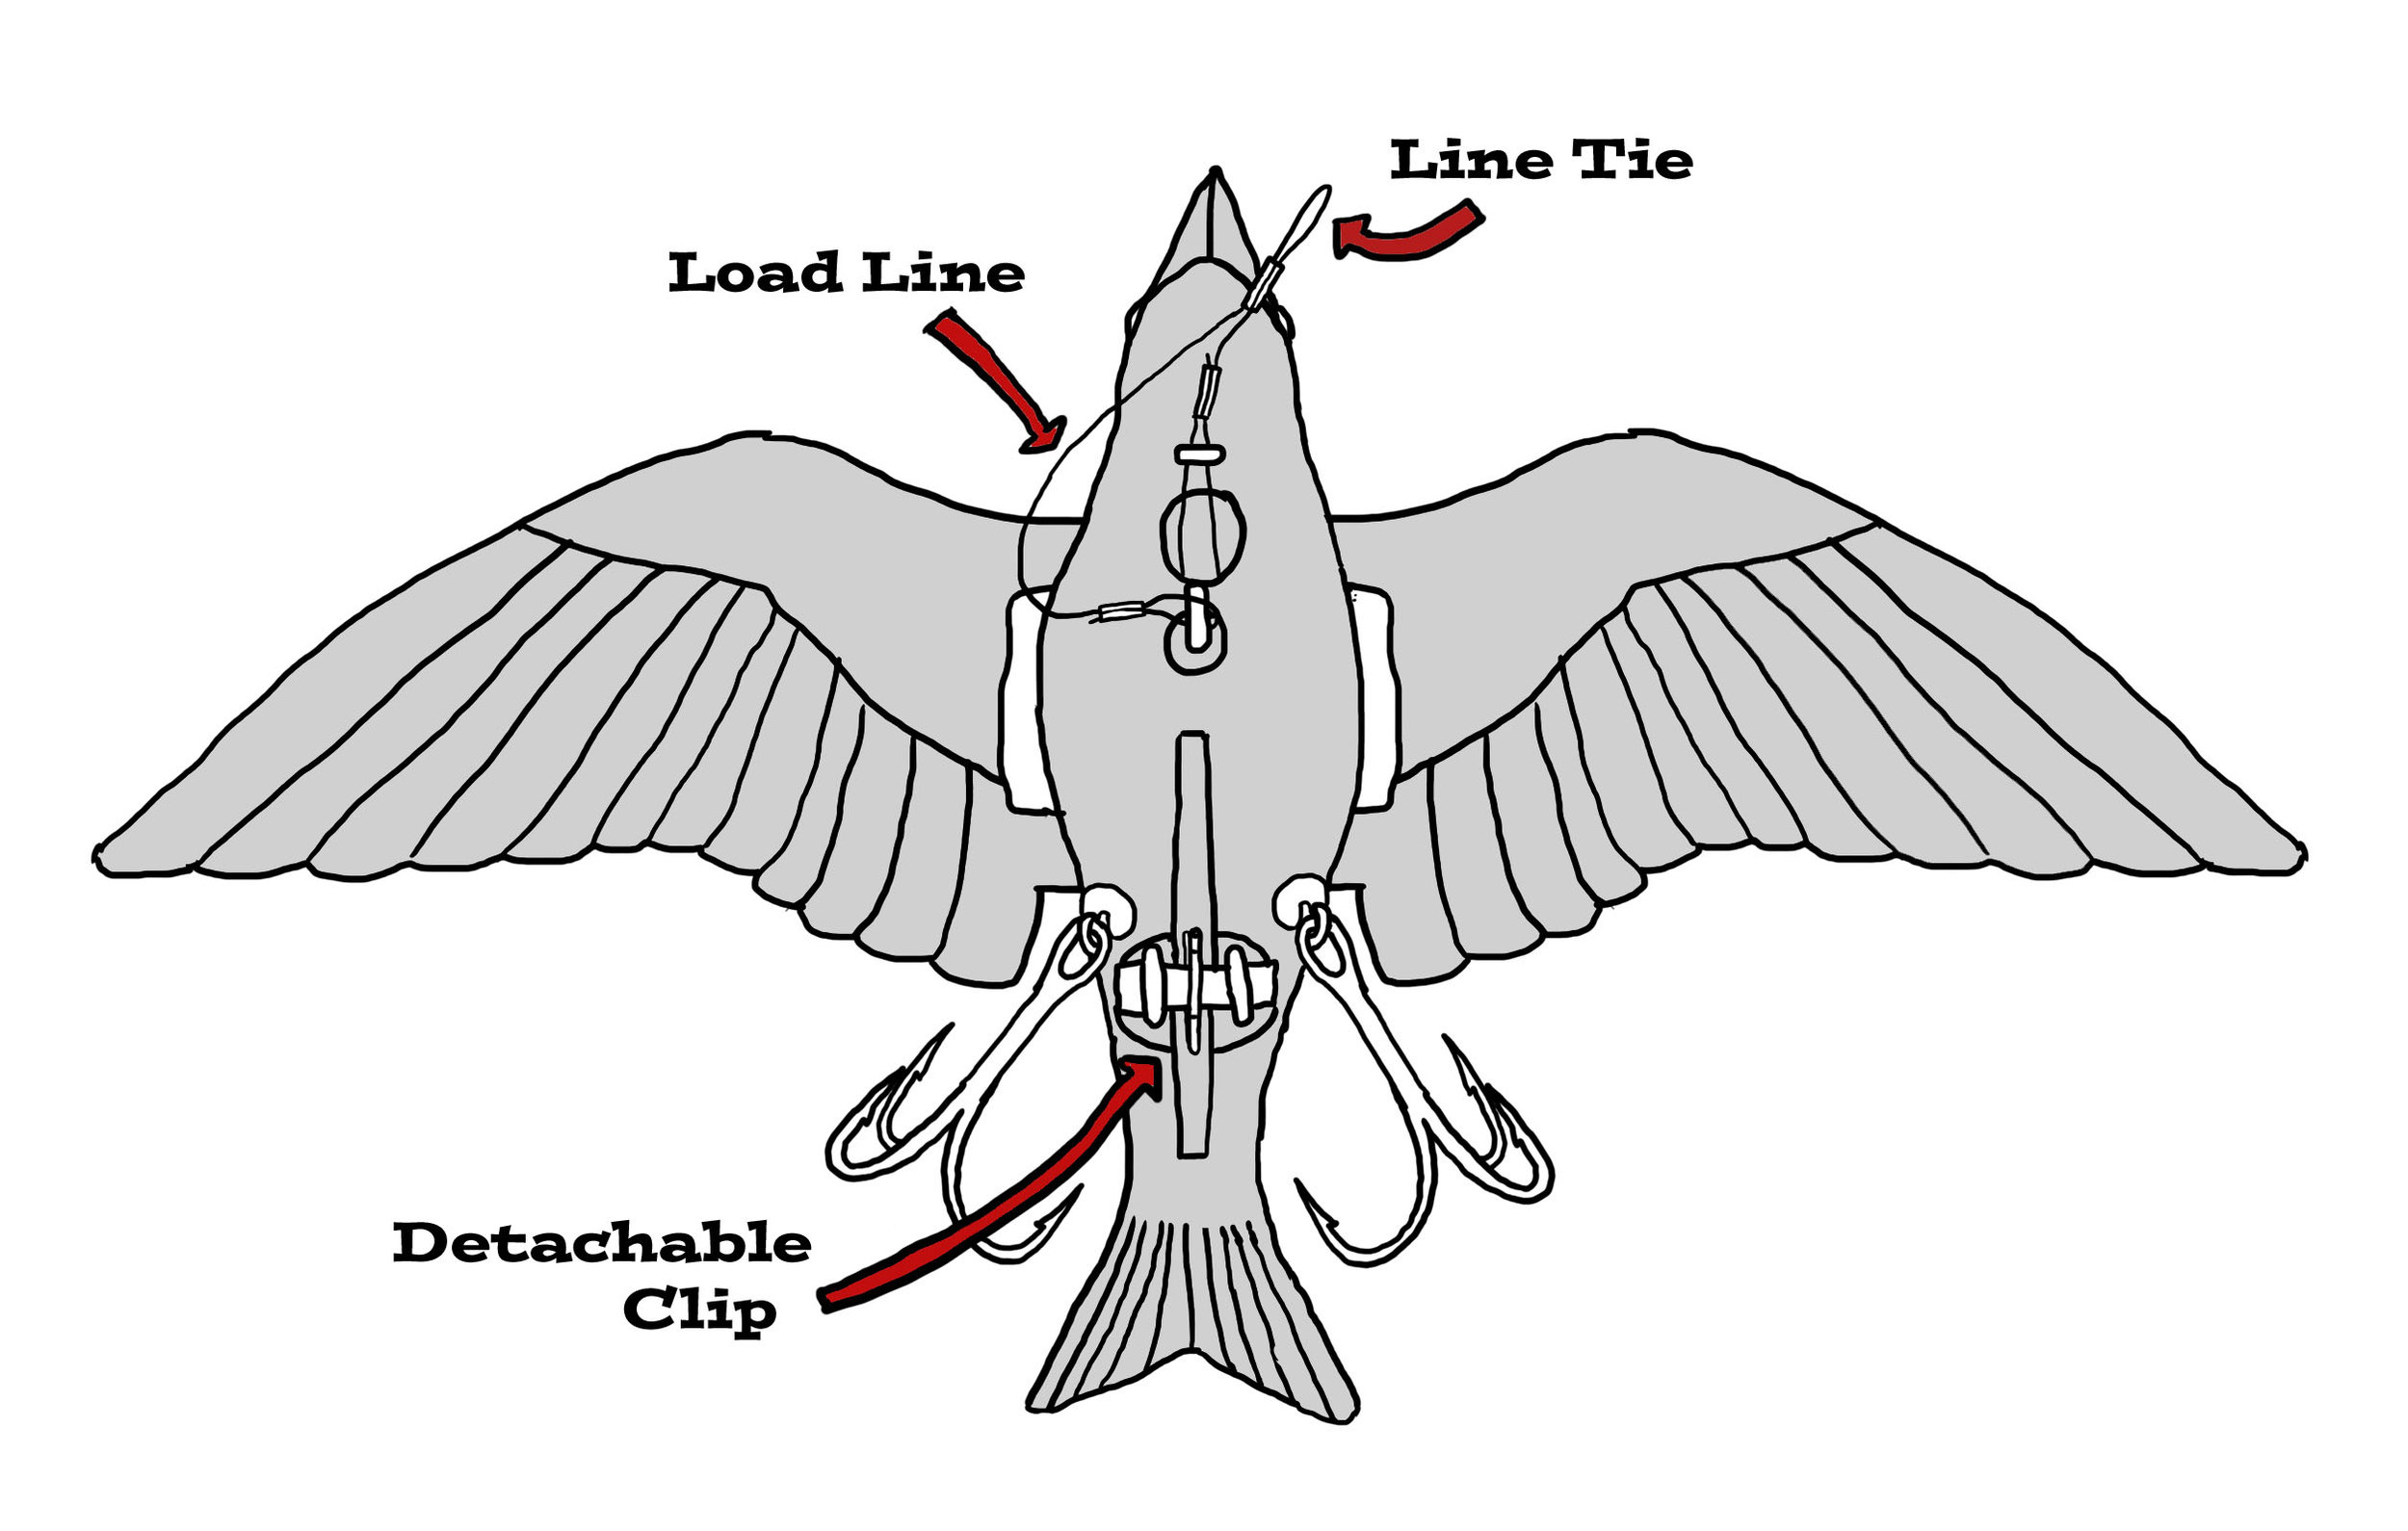 Drowning Bird Decoy diagram copy.jpg